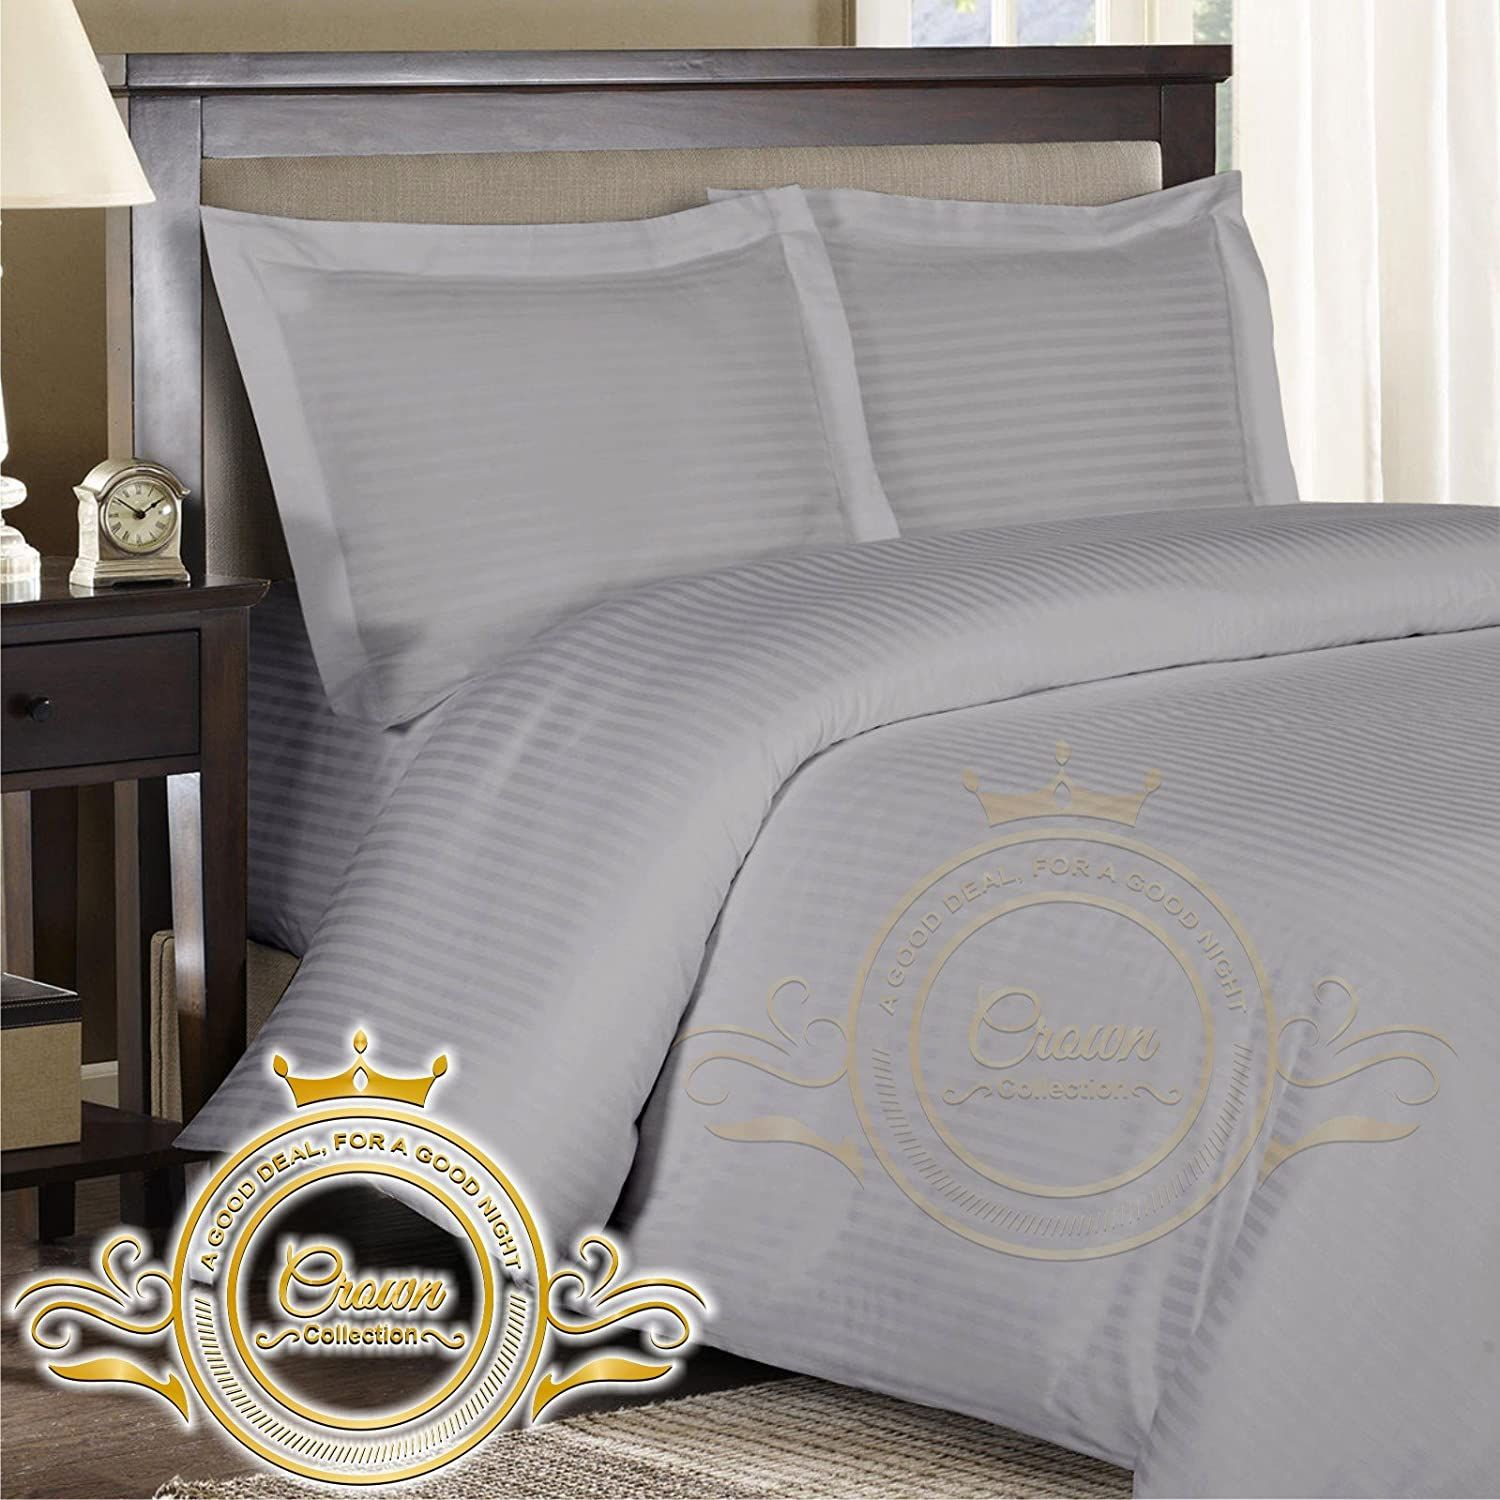 Crown Royal Hotel Collection 800 Thread Count Egyptian Cotton Rv King Size 6 Piece Sheet Set 8 In 2020 Queen Size Duvet Covers Royal Hotel Hotel Collection